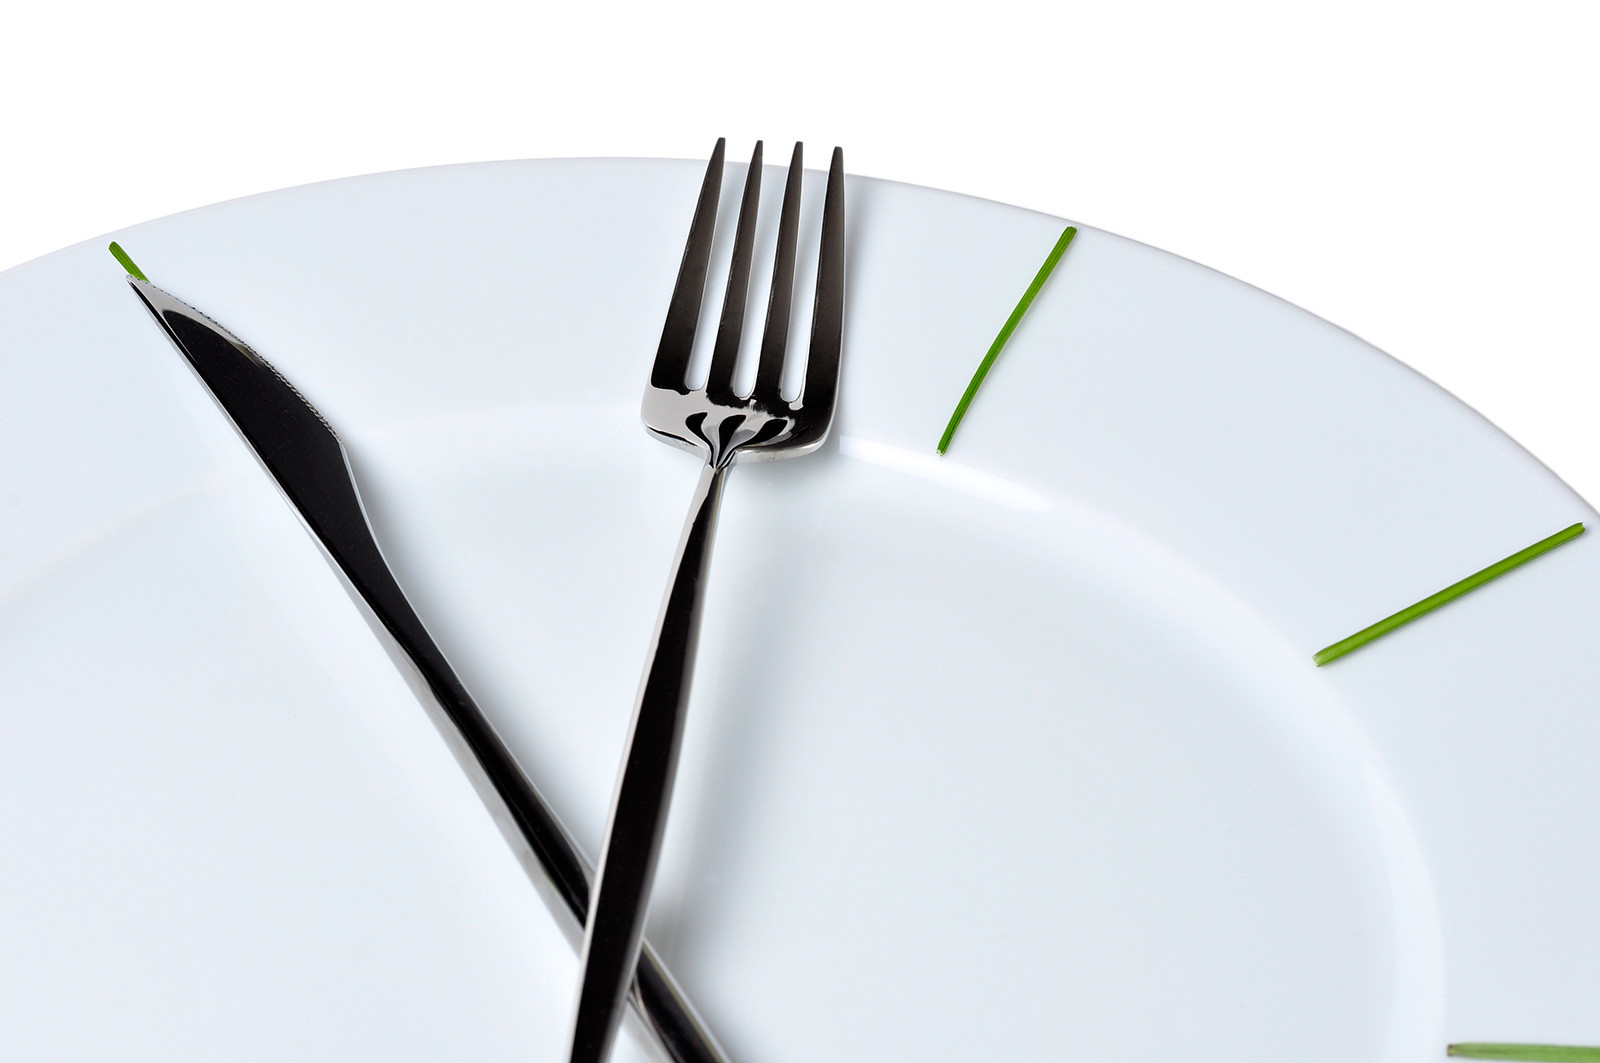 A fork and a knife laid on a round plate, forming the look of a clock